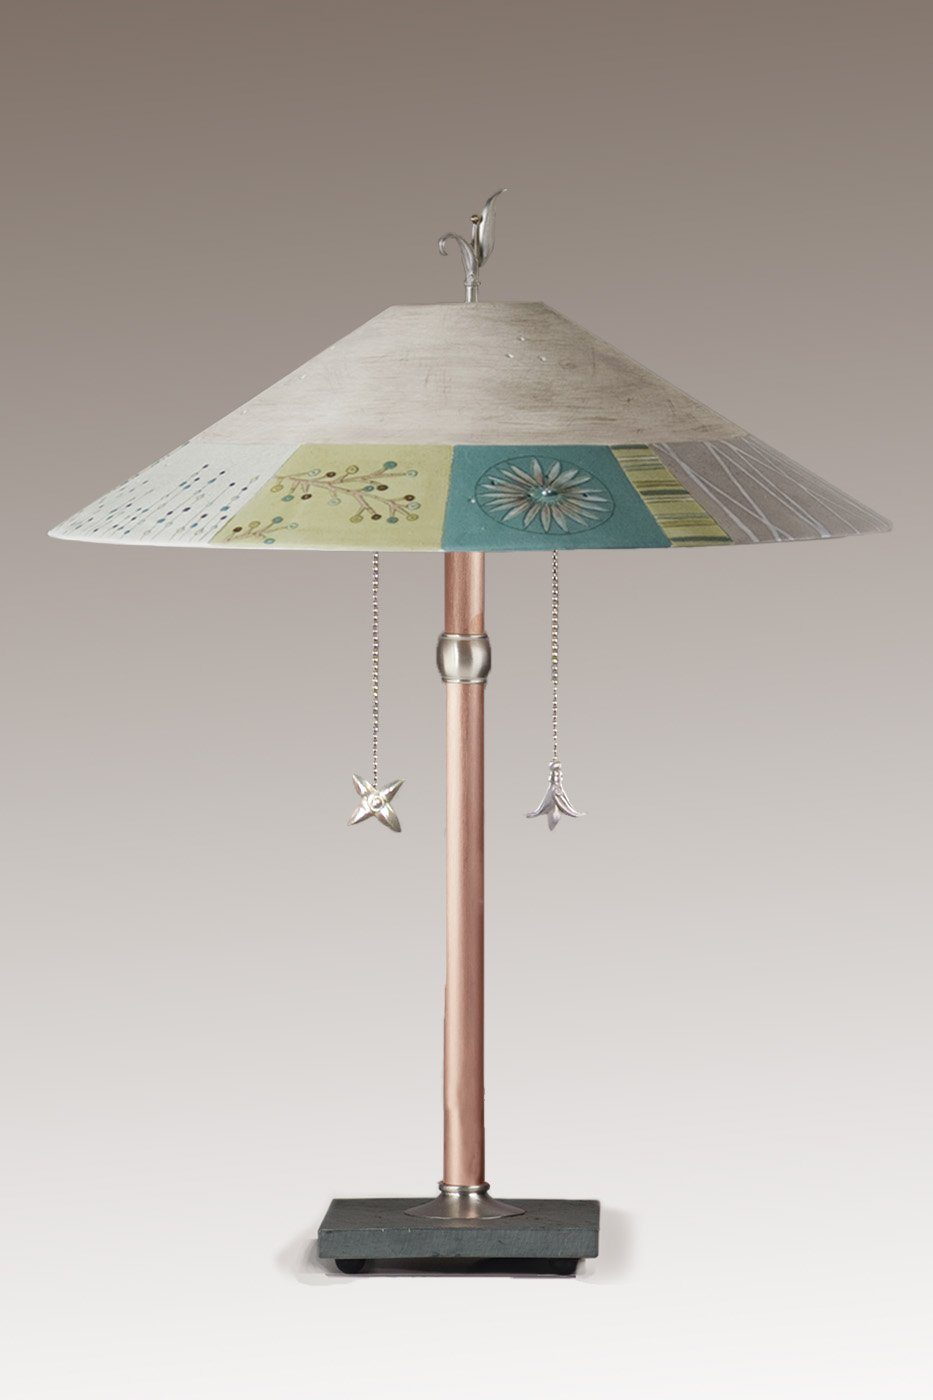 Copper Table Lamp with Large Wide Conical Ceramic Shade in Modern Field